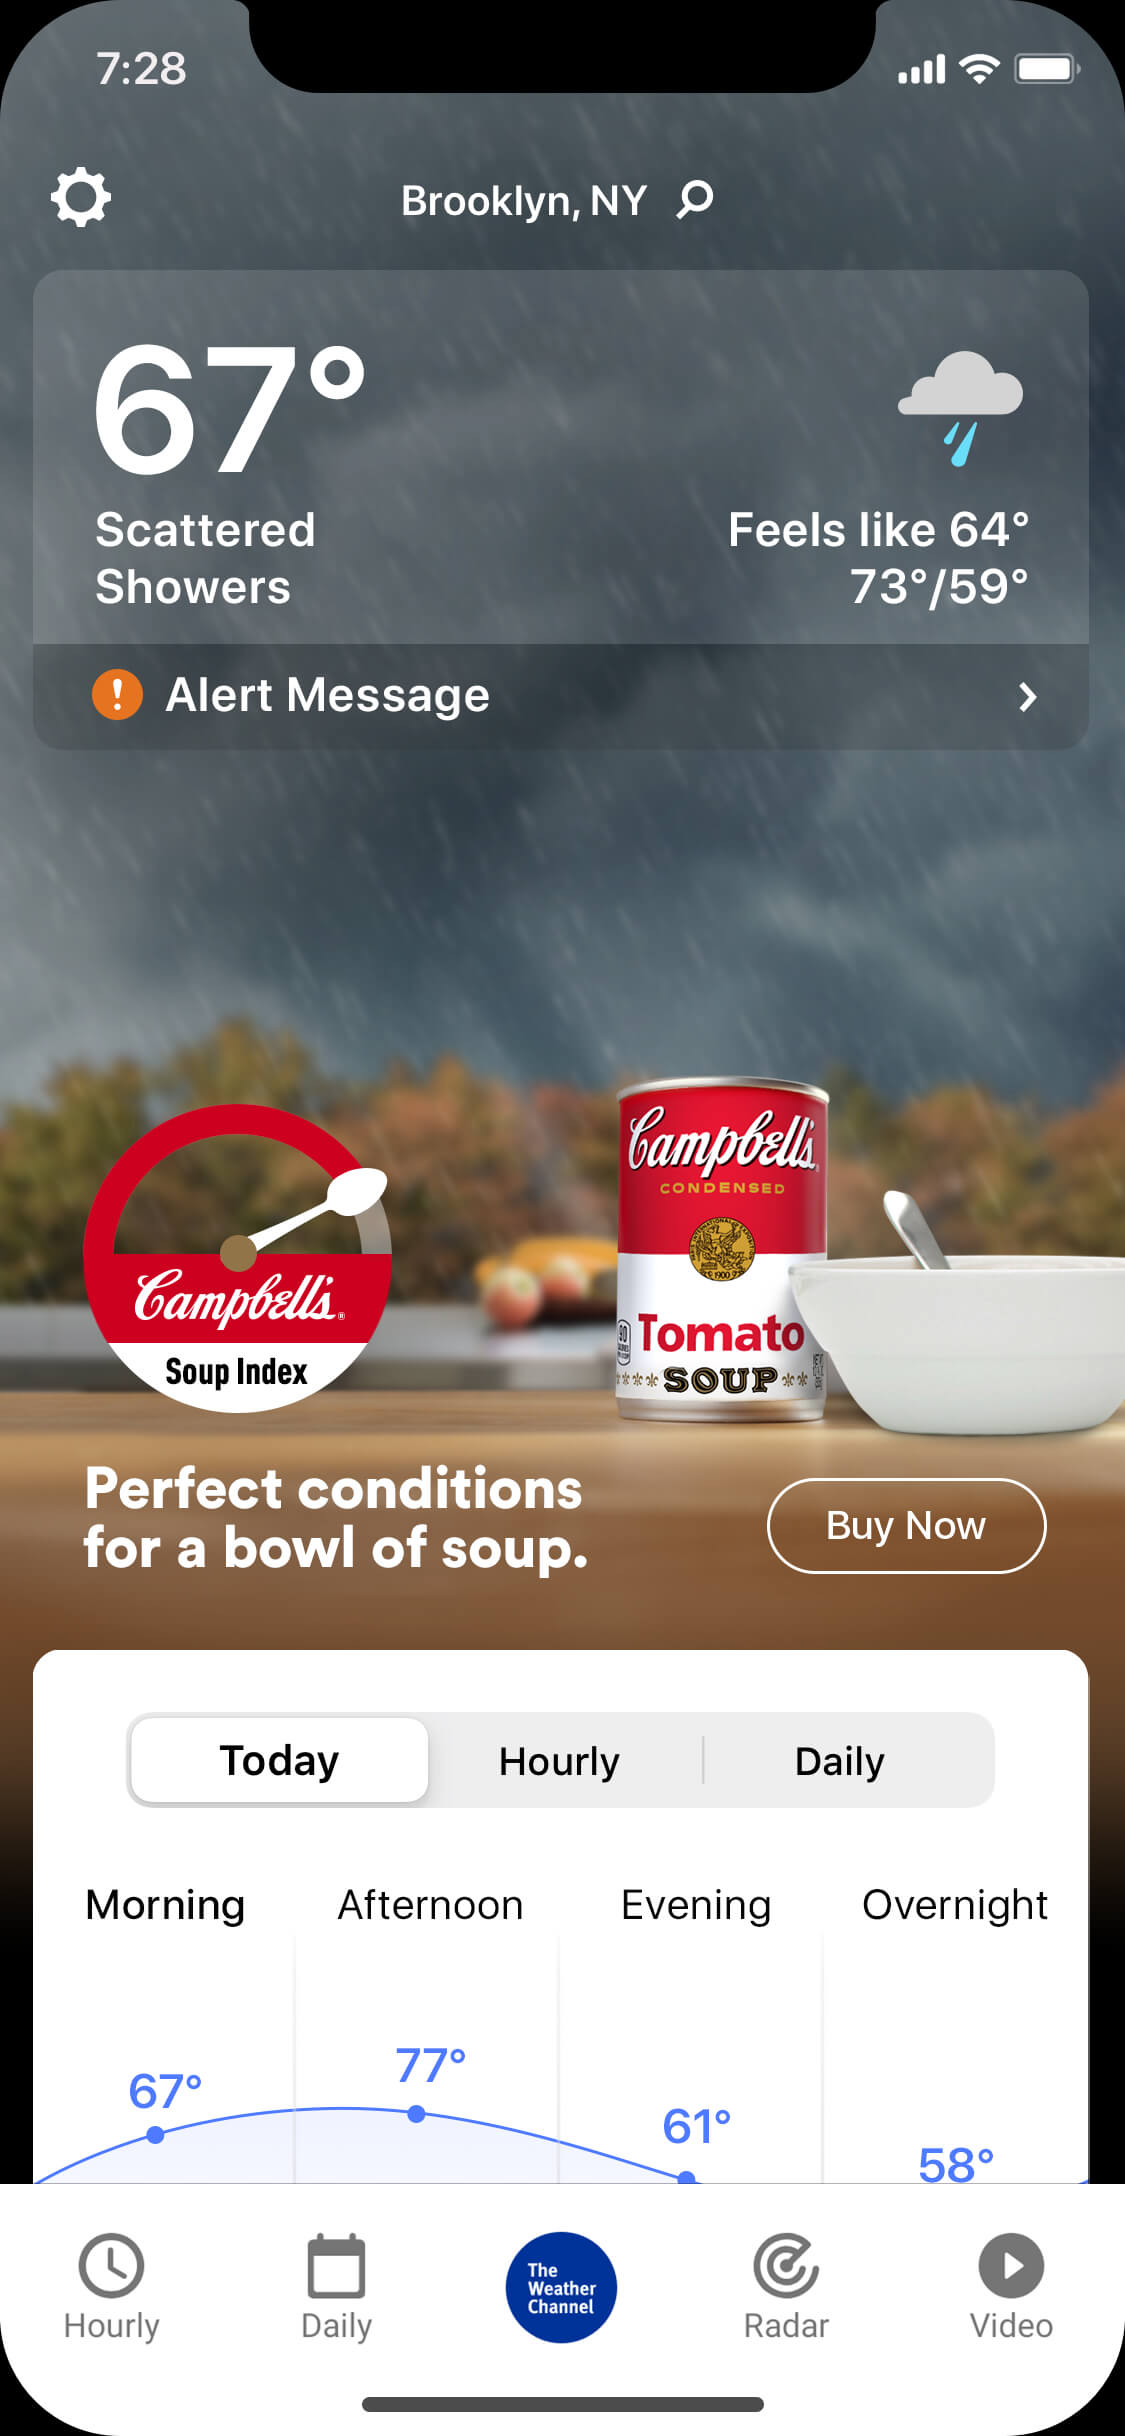 campbells-soup-index-maim_rainy-day